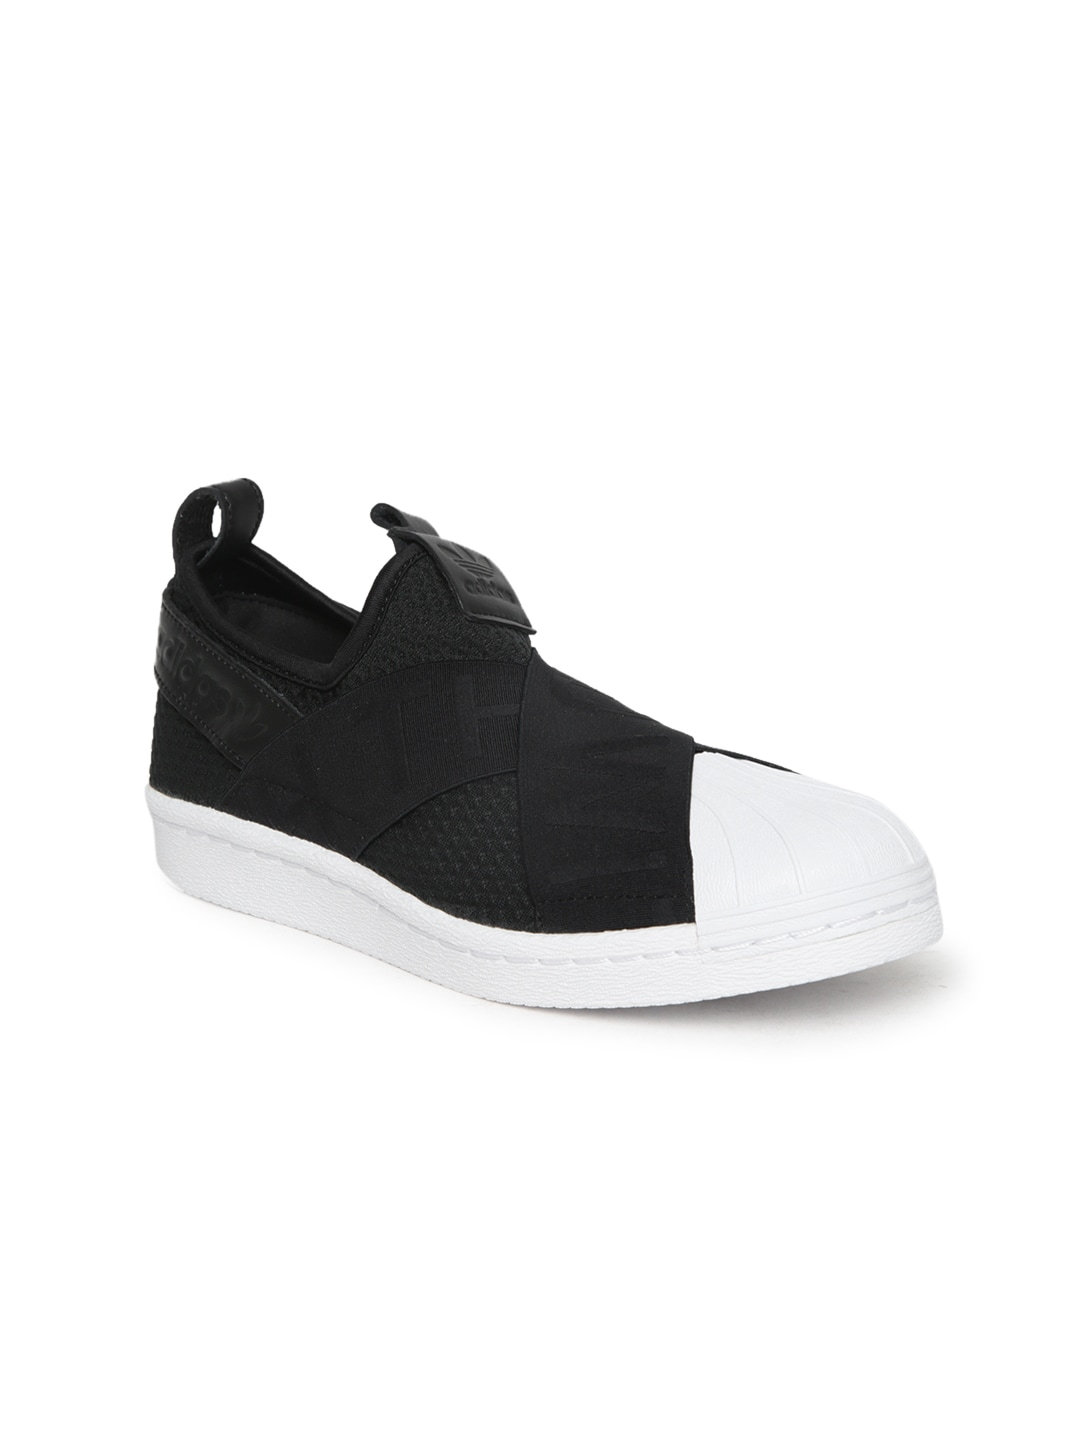 new arrival 14e26 b3f8a Women s Adidas Shoes - Buy Adidas Shoes for Women Online in India